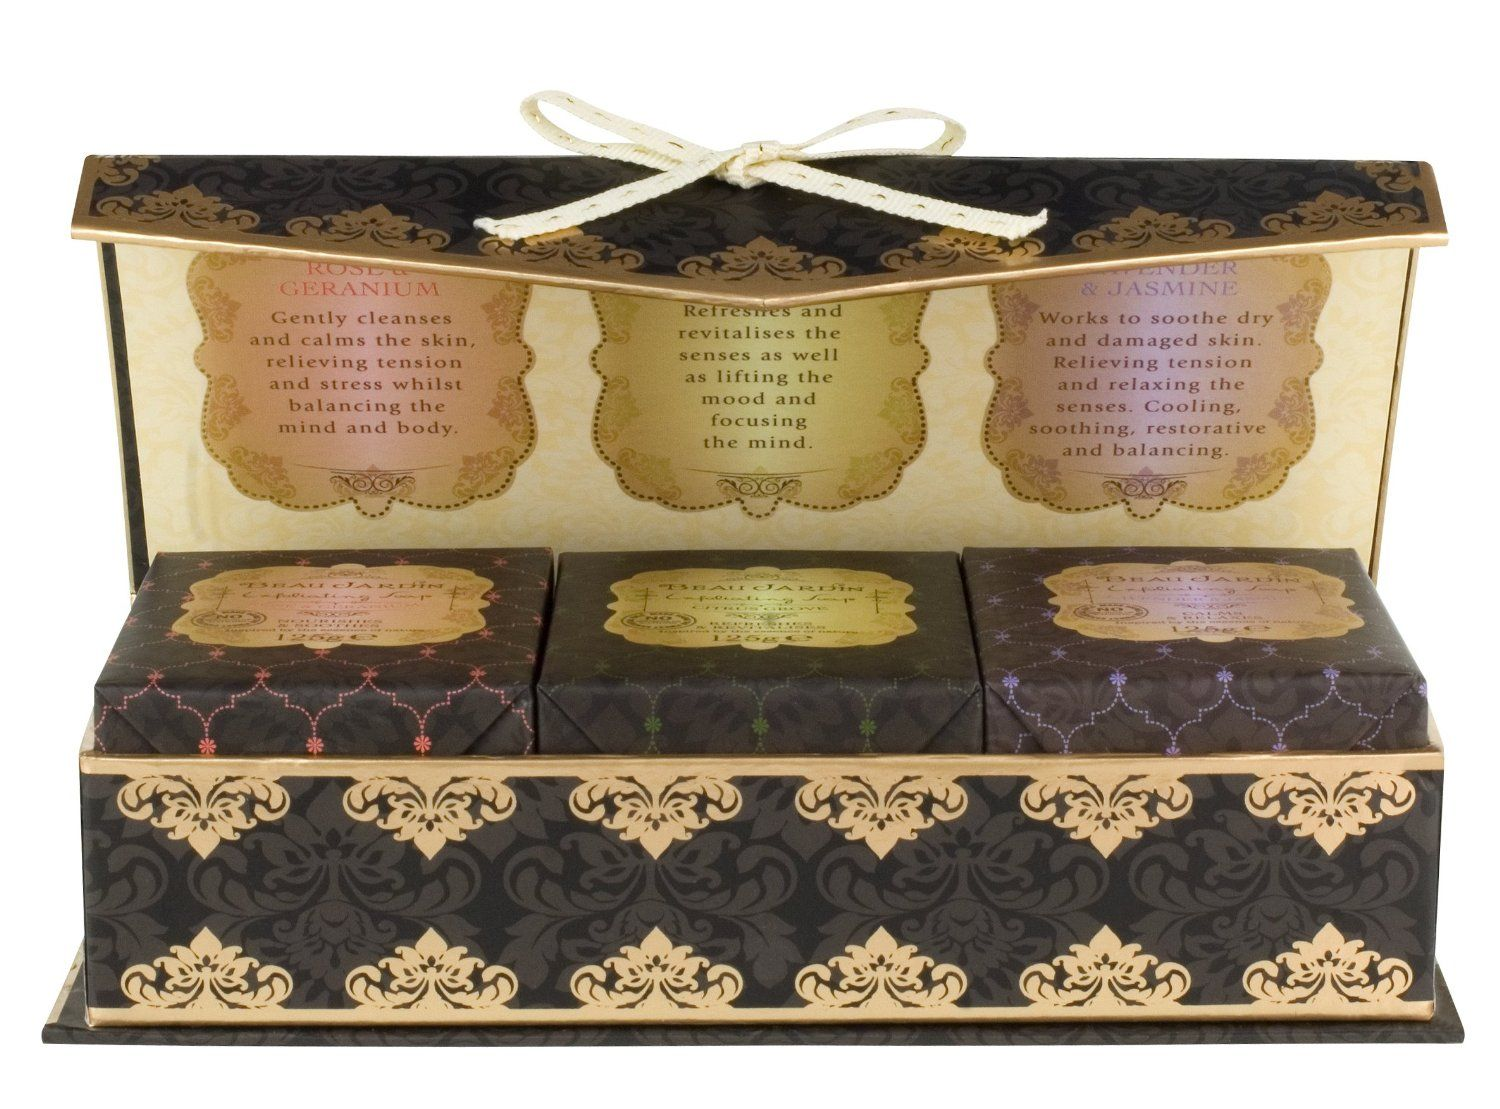 This Beau Jardin Soap Collection contains 3 luxury soaps in a ...